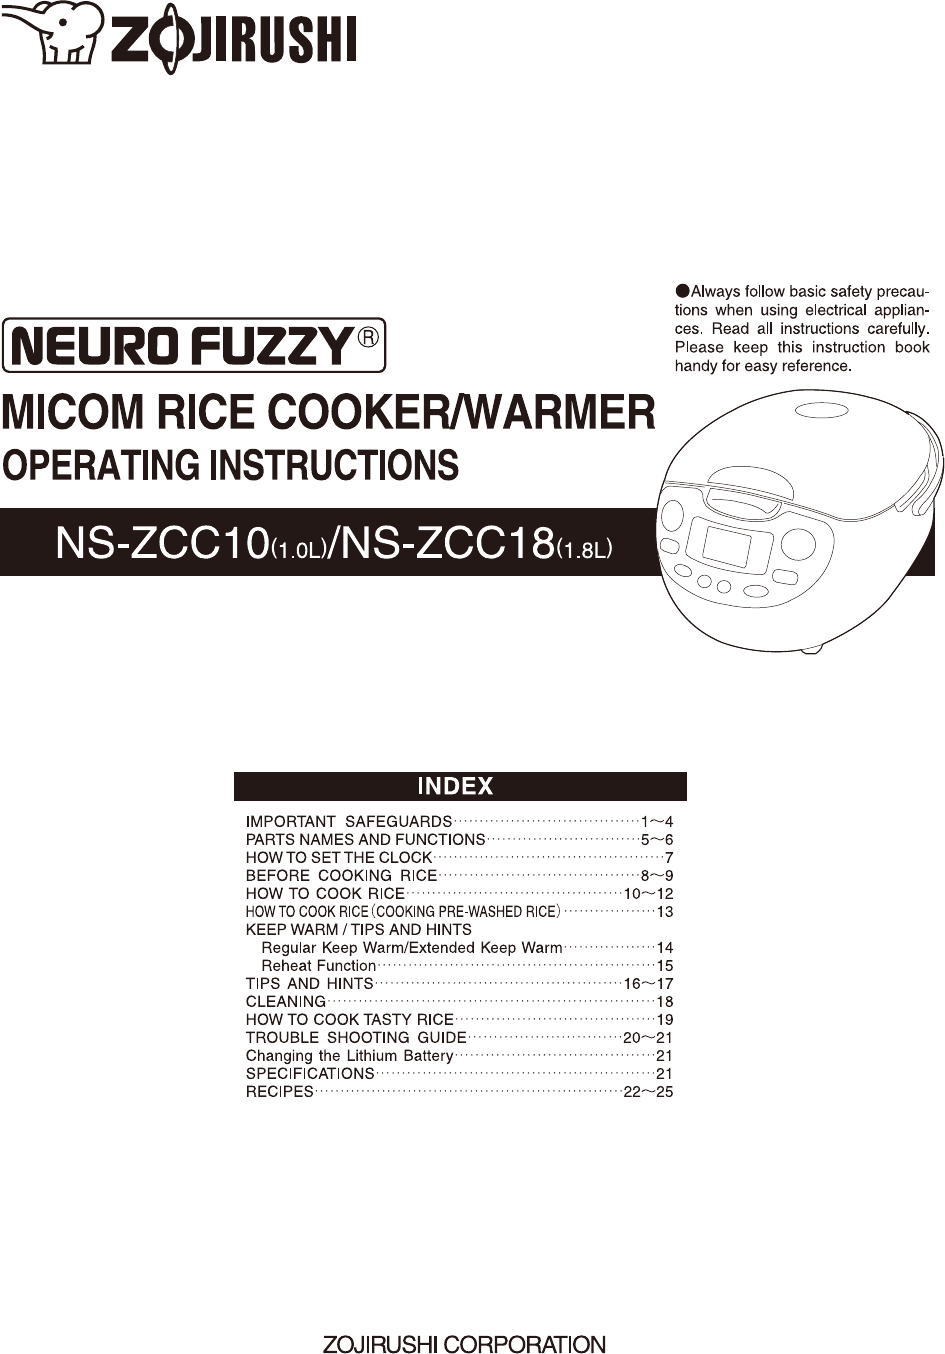 Download free pdf for zojirushi ns-zcc18 warmers other manual.